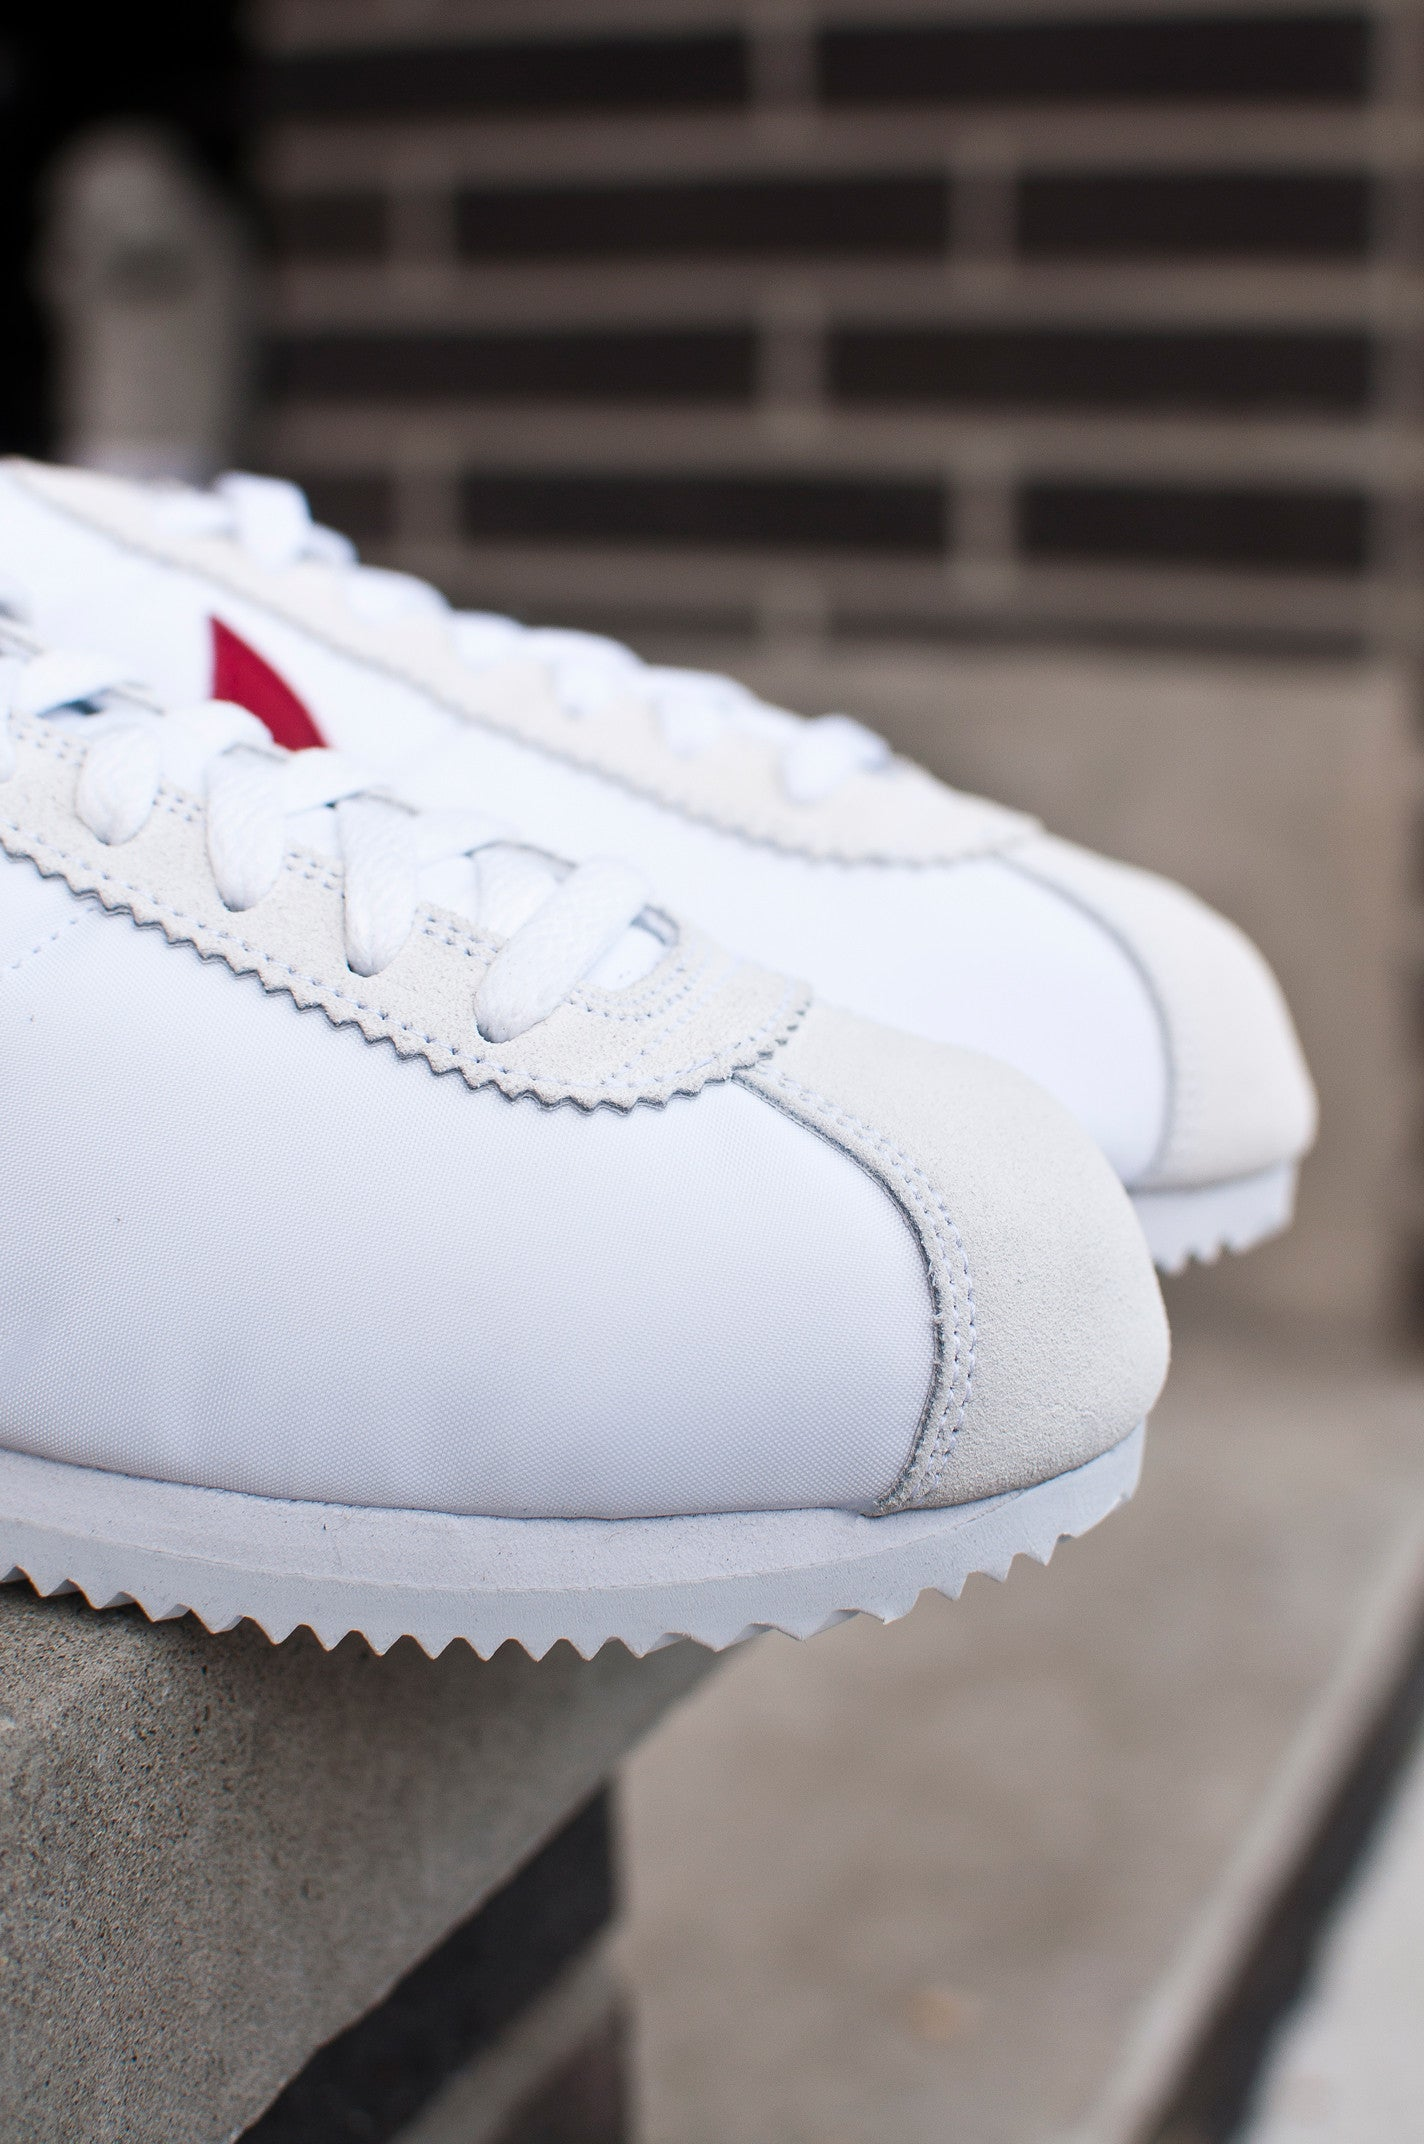 Nike Air Classic Cortez Premium White/Red/Royal 876873-101, 2